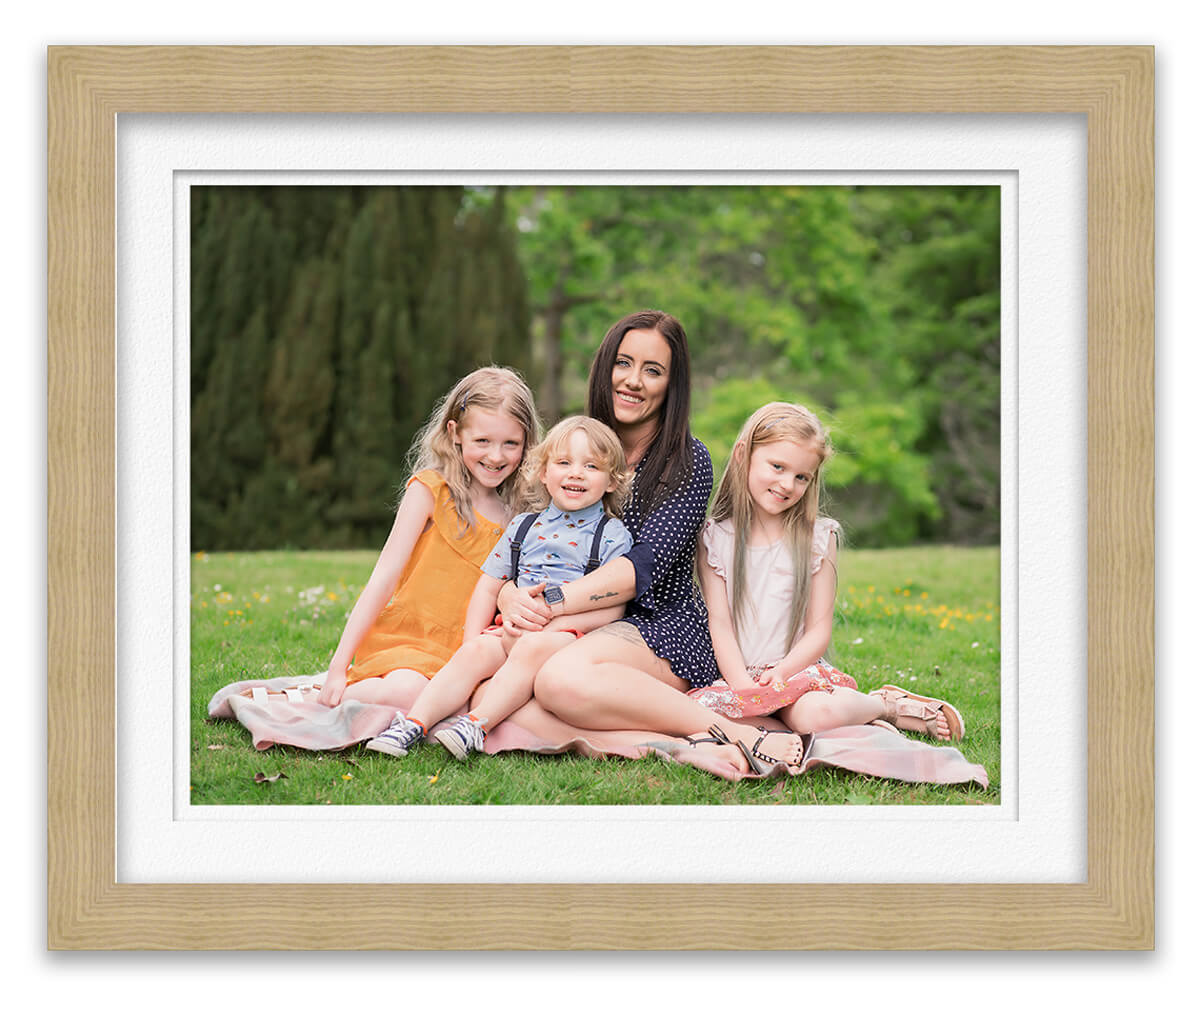 family portrait nurse with her young children Life in Focus Portraits outdoor family photographer Helensburgh